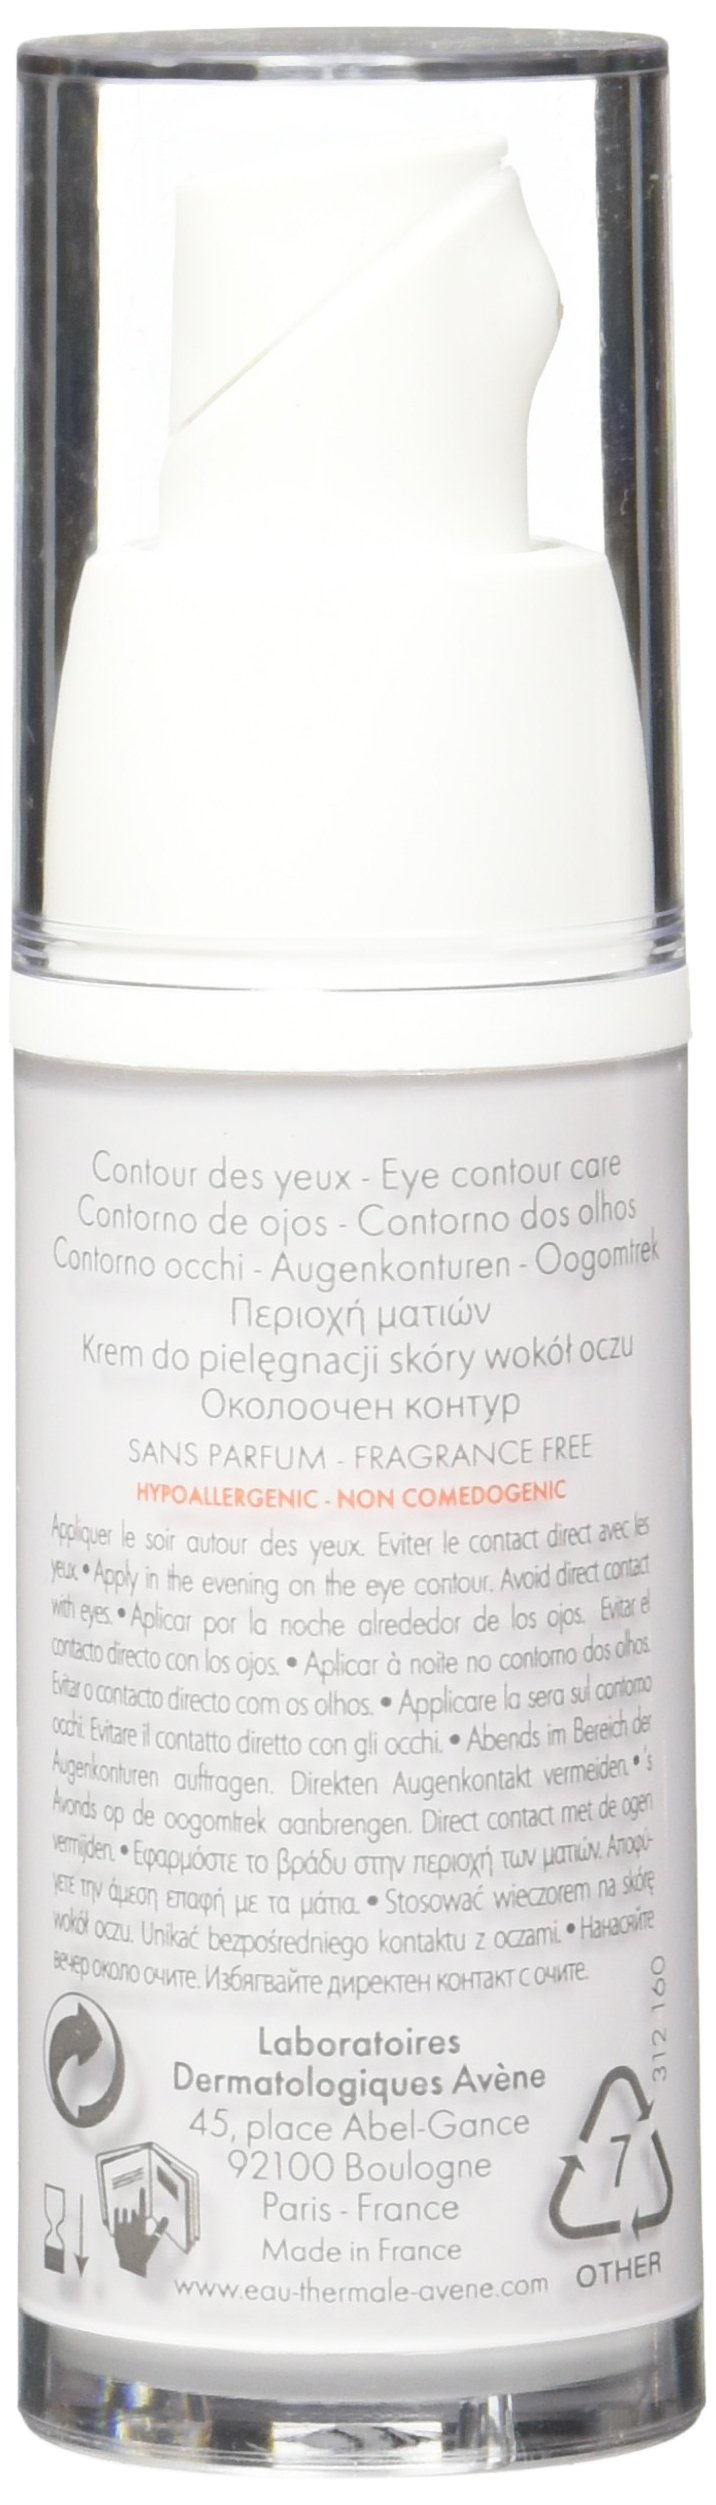 Eau Thermale Avène Physiolift Eyes Wrinkles, Puffiness, Dark Circles Cream, 0.5 fl. oz. by Eau Thermale Avène (Image #6)